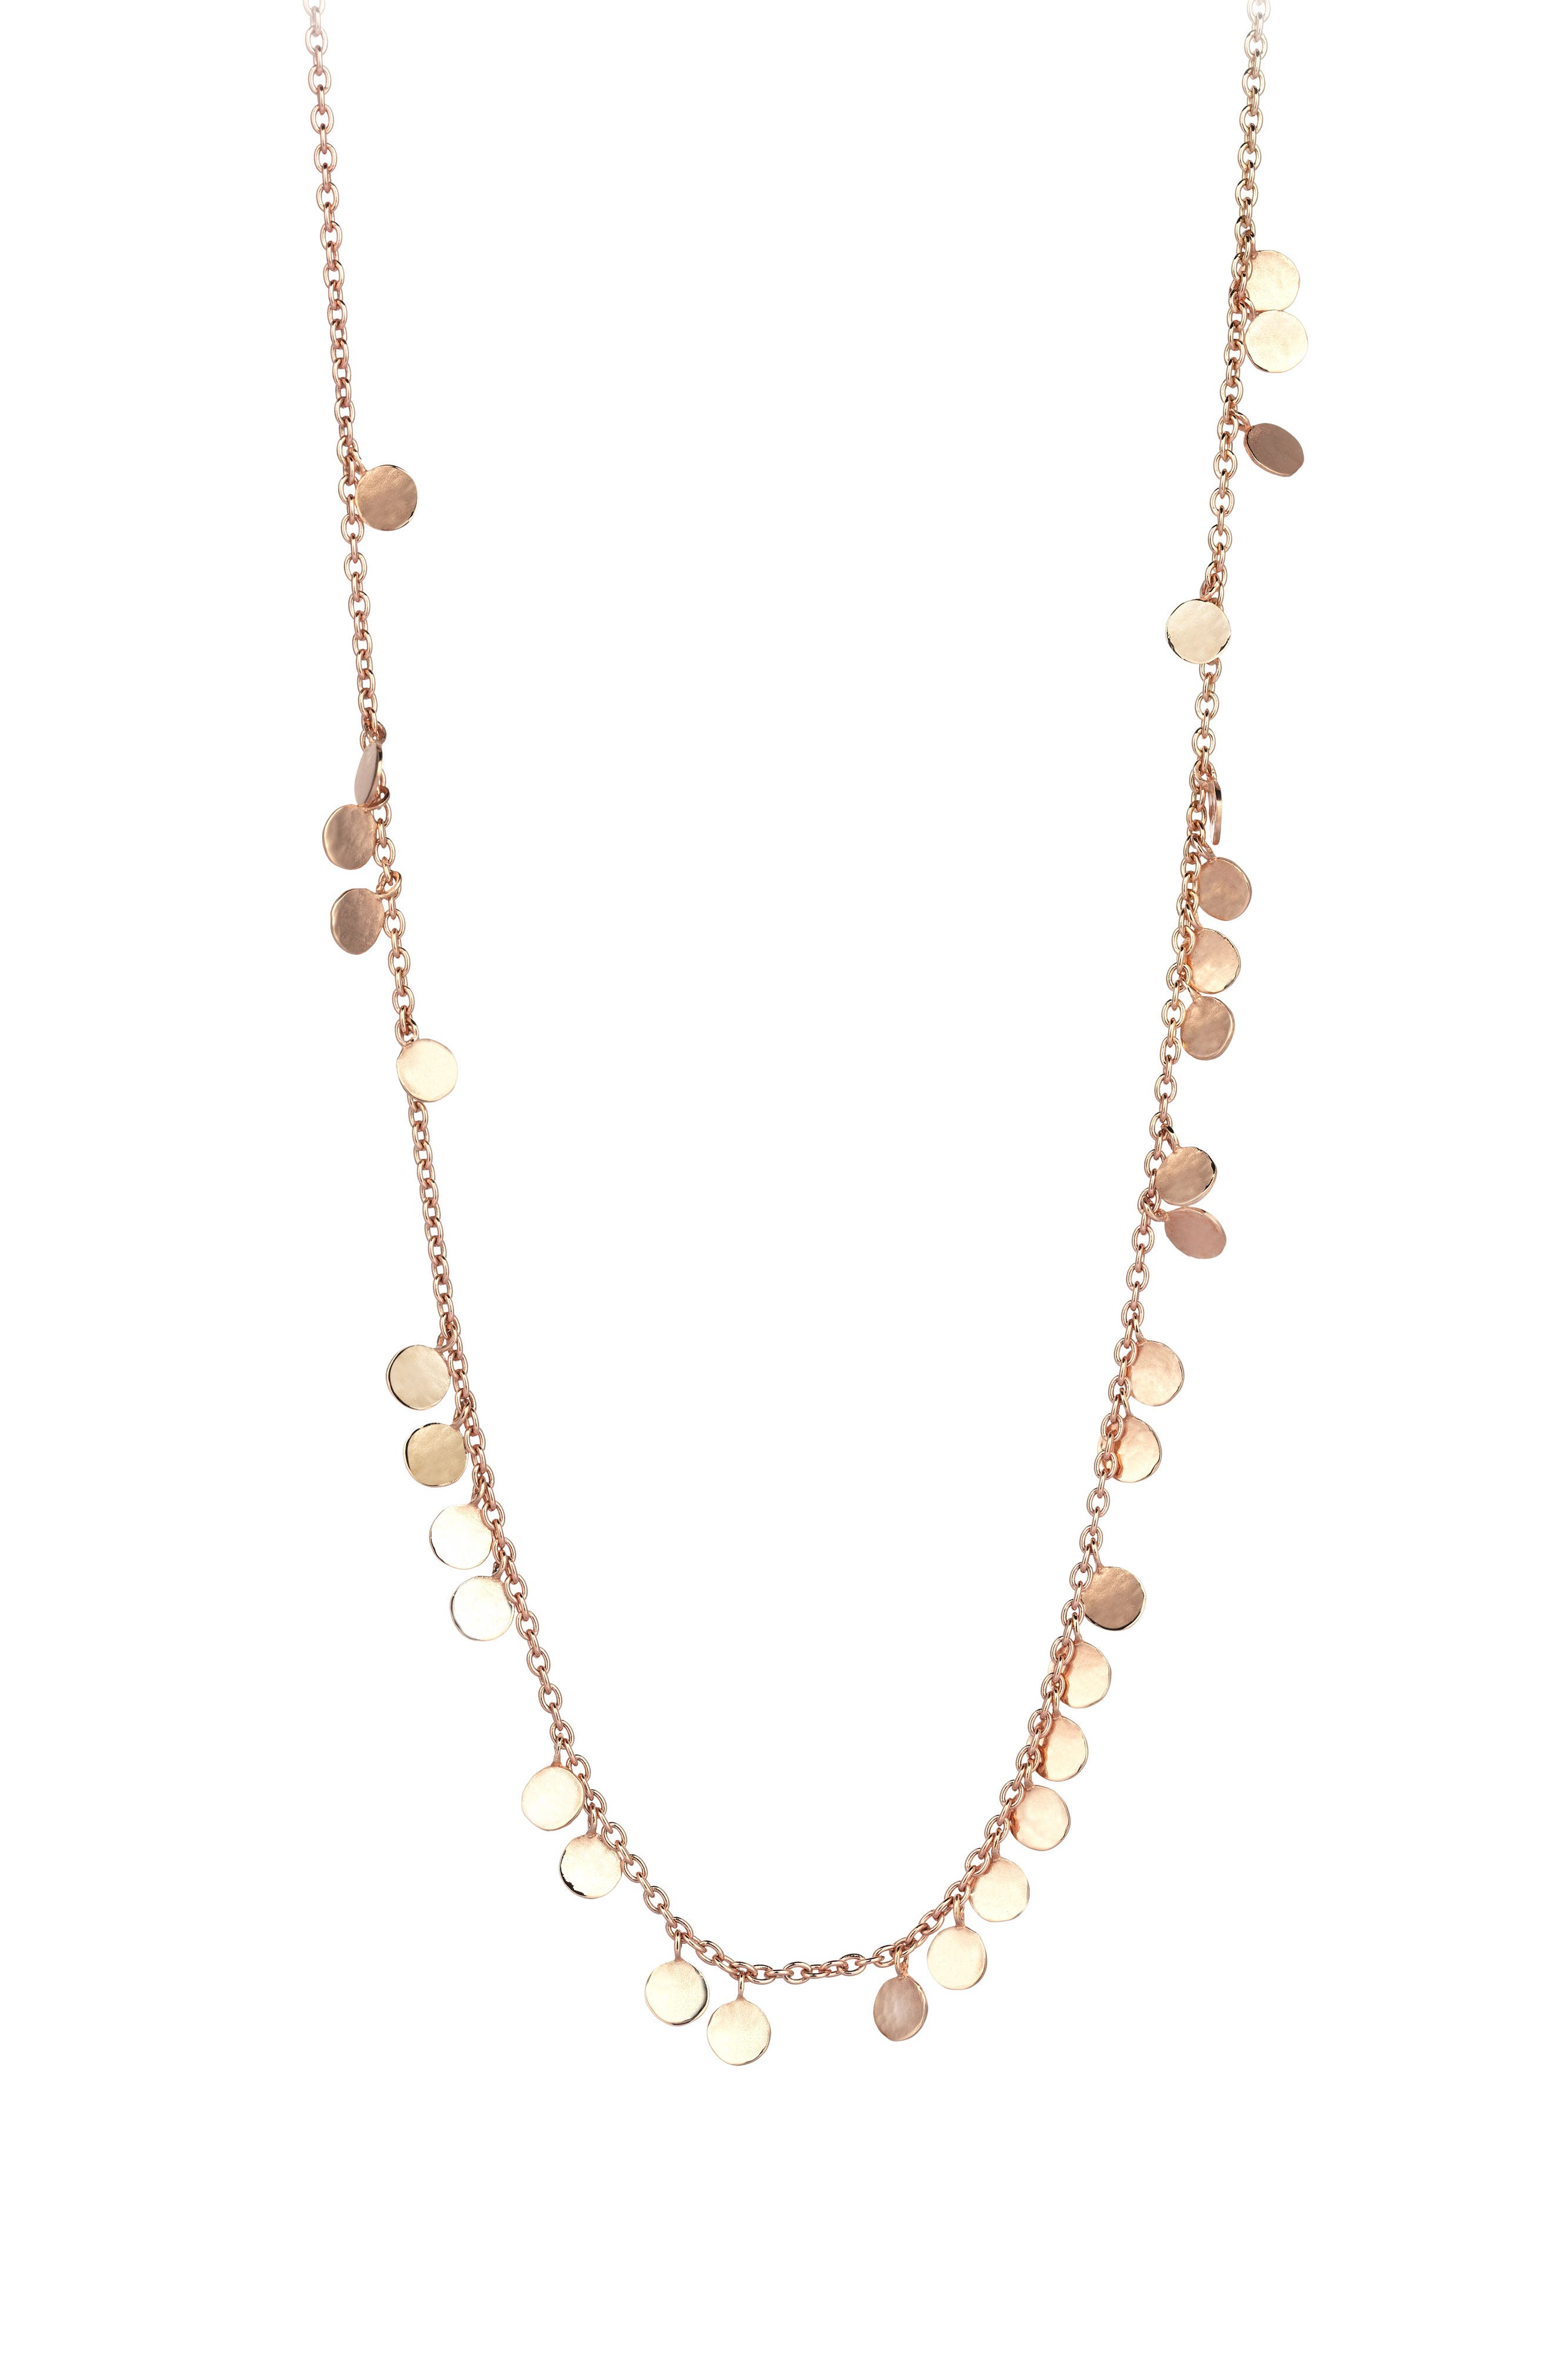 Dangling Circles Pendant Necklace,                             Main thumbnail 1, color,                             ROSE GOLD